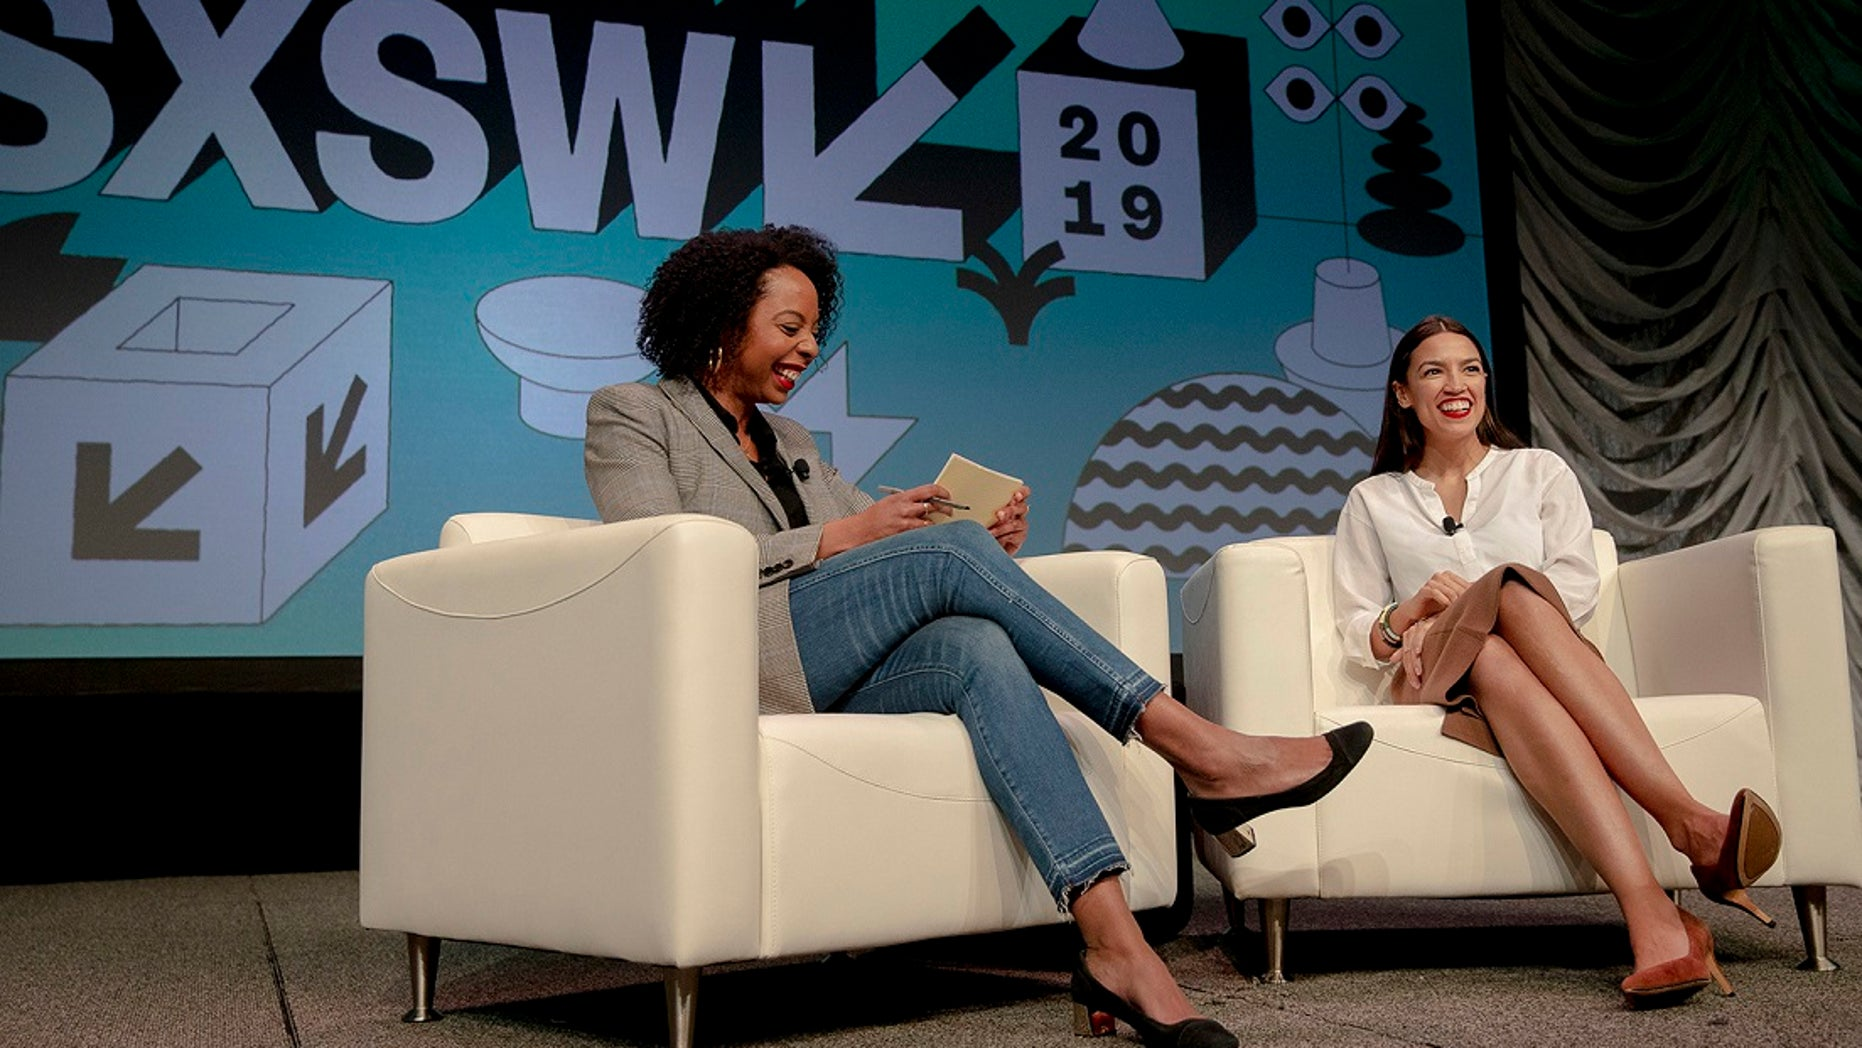 Rep. Alexandria Ocasio-Cortez, right, D-New York, speaks with Briahna Gray, a senior politics editor at The Intercept, during South by Southwest on Saturday, March 9, 2019, in Austin, Texas. (Nick Wagner/Austin American-Statesman via AP)